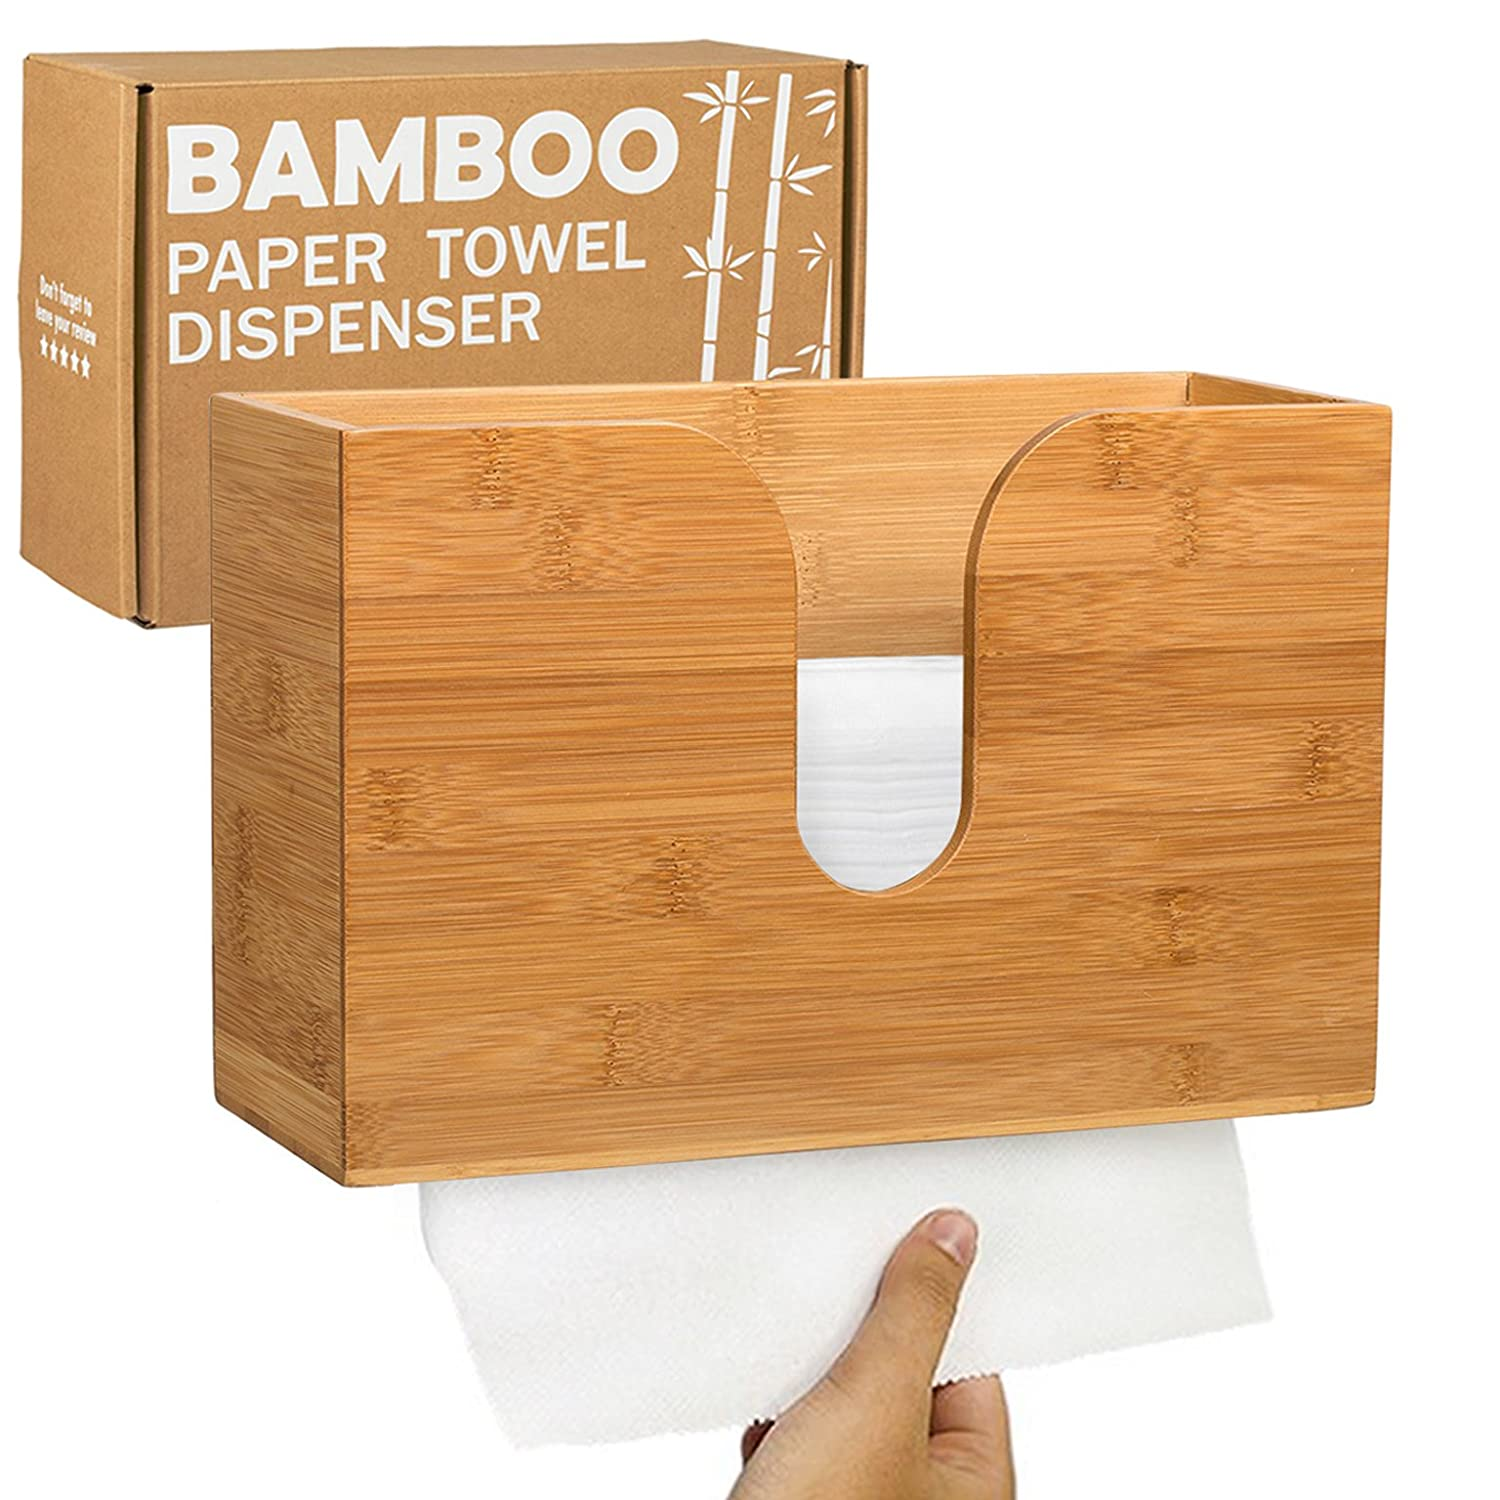 Bamboo Paper Towel Dispenser - Wall Mounted & Countertop for Kitchen/Bathroom - Holds Multifold, Z-fold, Trifold, Single Fold, C-fold Paper Towels